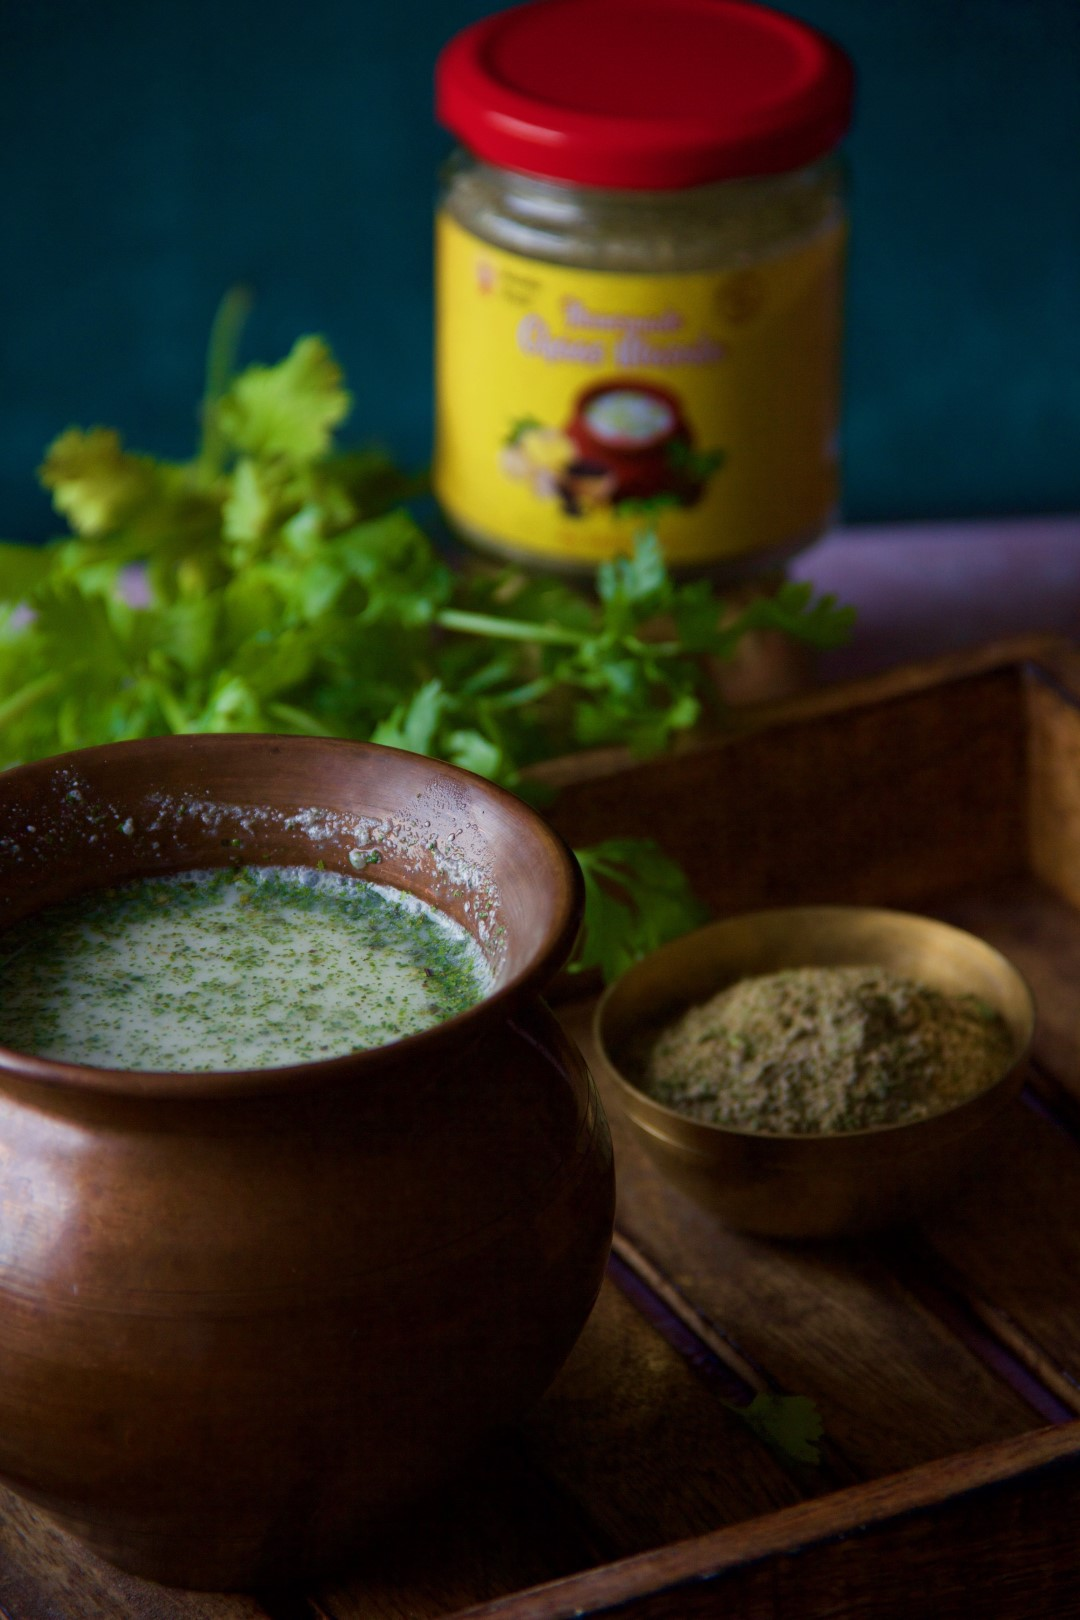 Chaas Masala by Masala Monk has the correct blend of herbs and spices